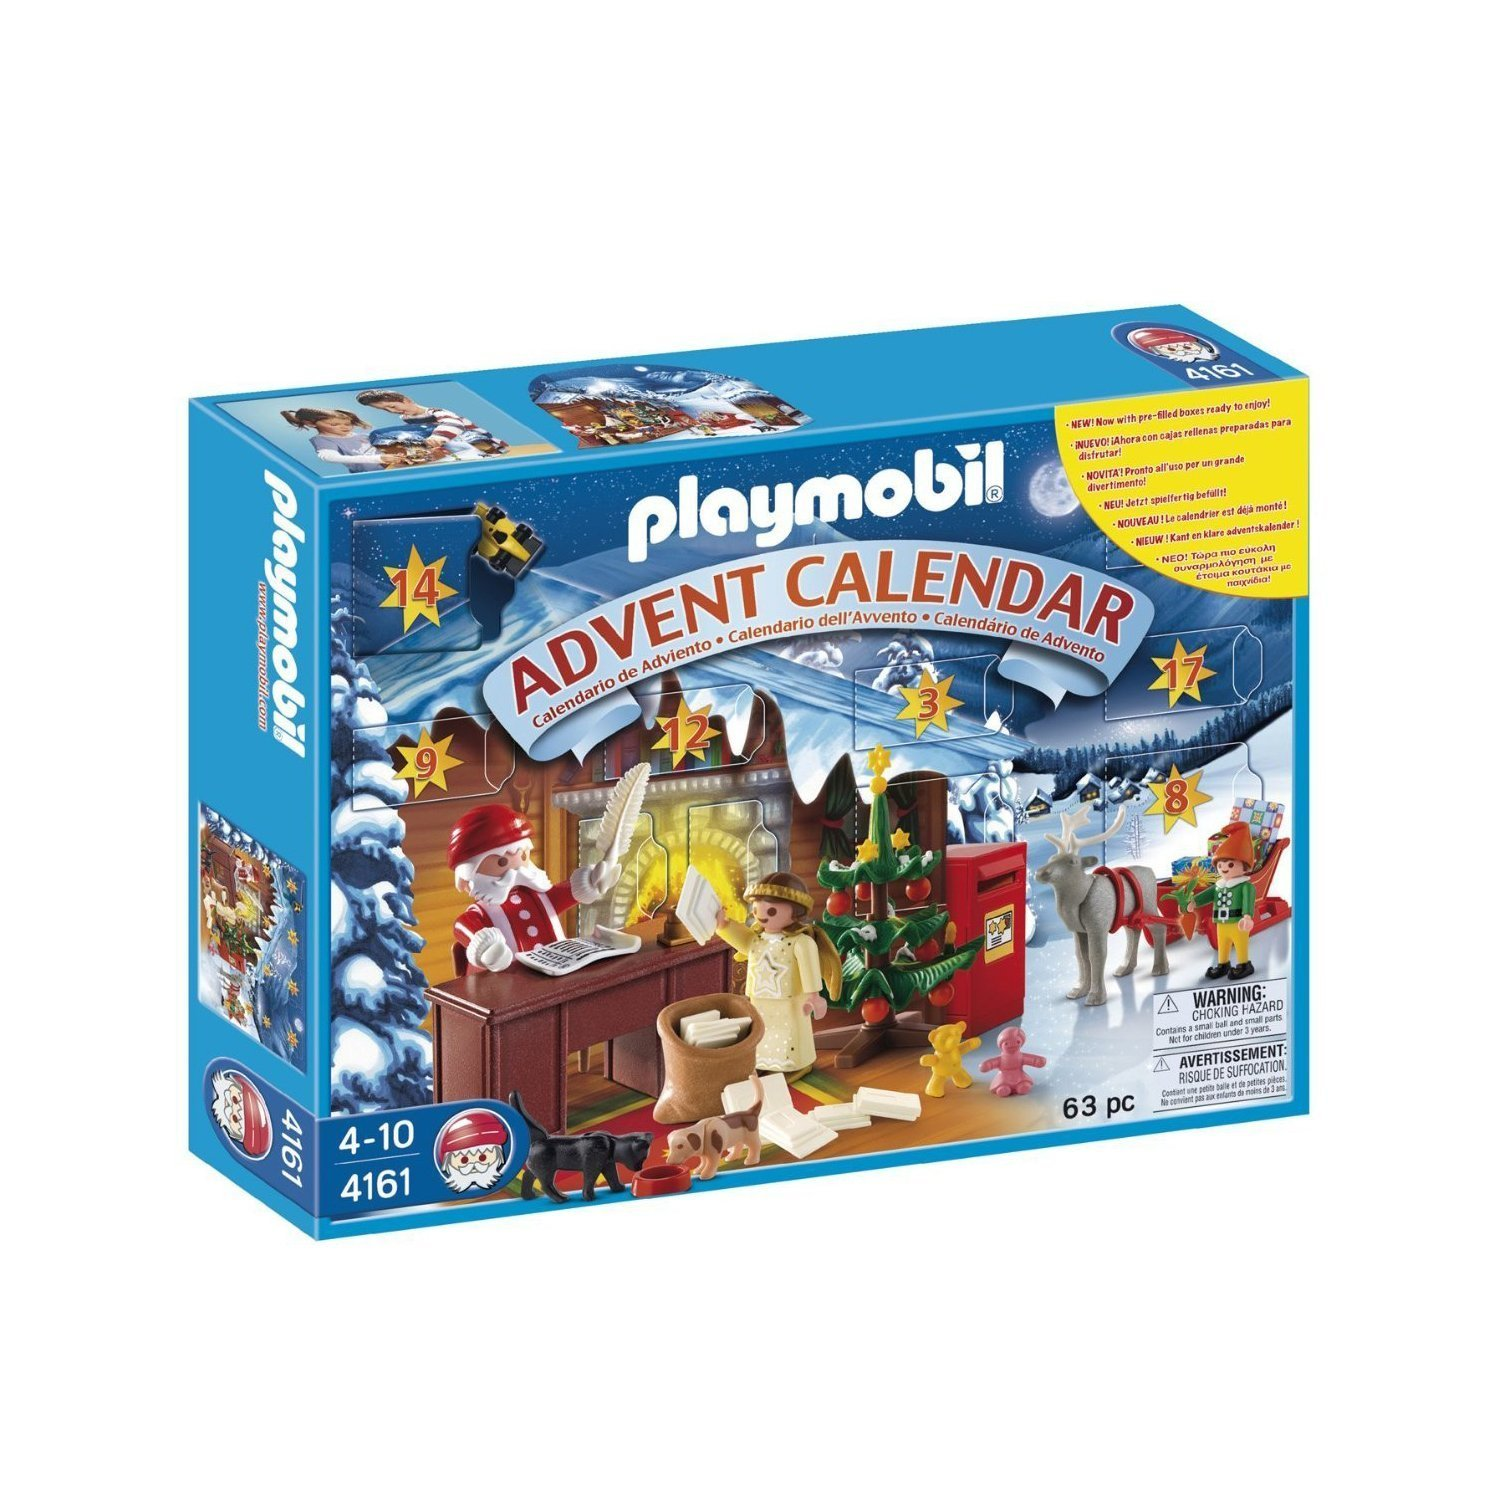 Playmobil 4161 Advent Calendar Christmas Post Office by Playmobil